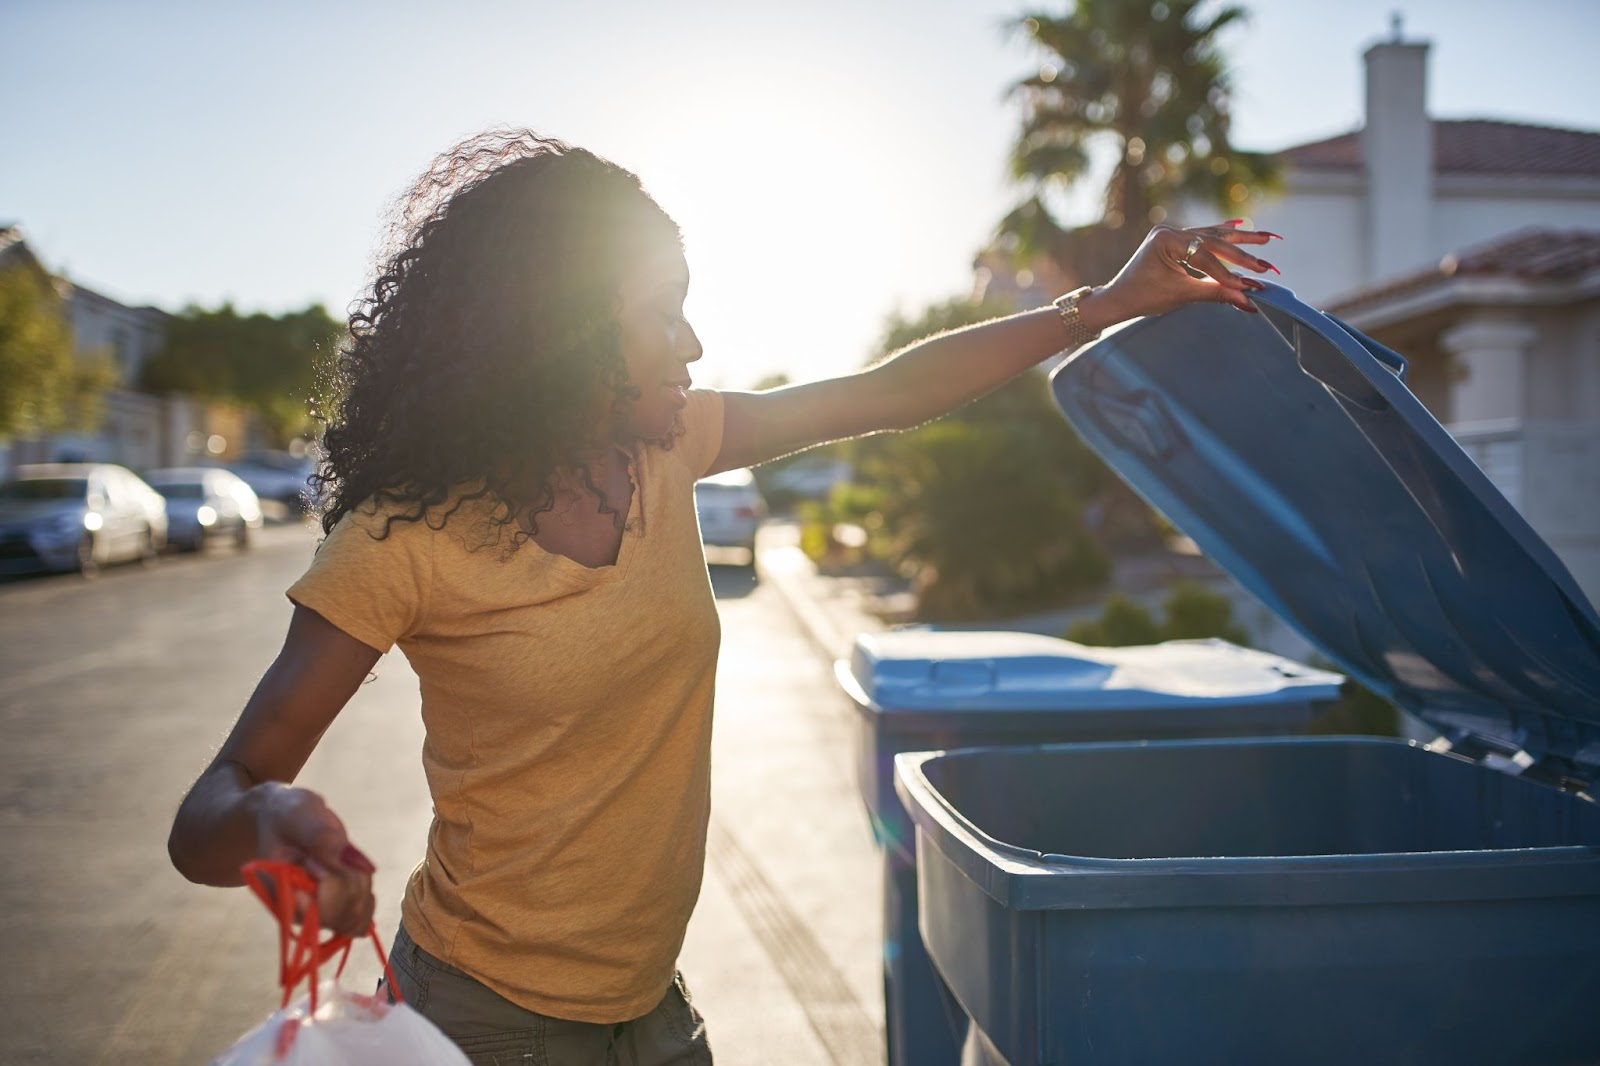 A woman participates in curbside recycling.